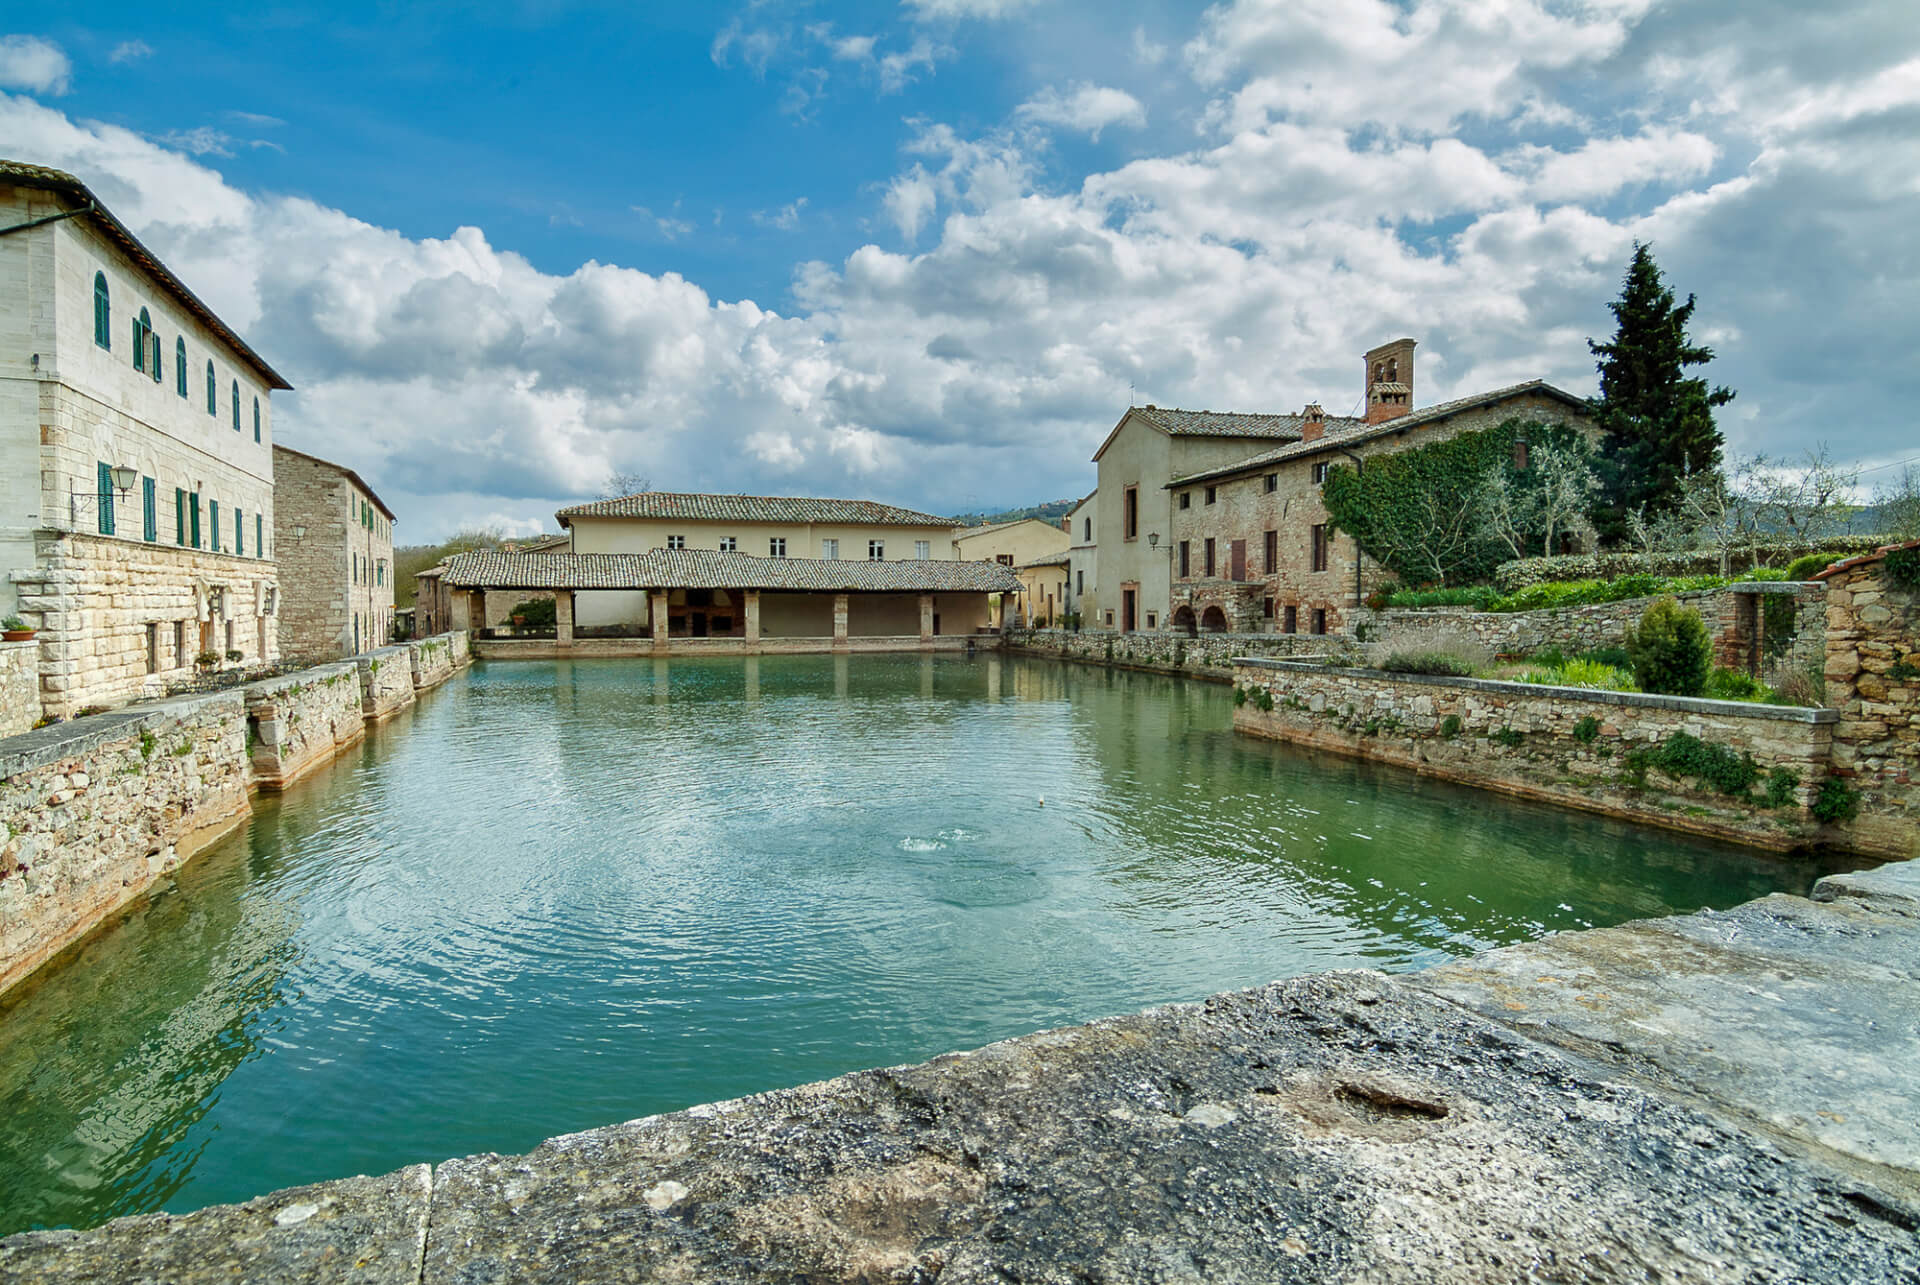 The bagno vignoni hotel of your dreams adler thermae toscana review - Adler bagno vignoni hotel ...